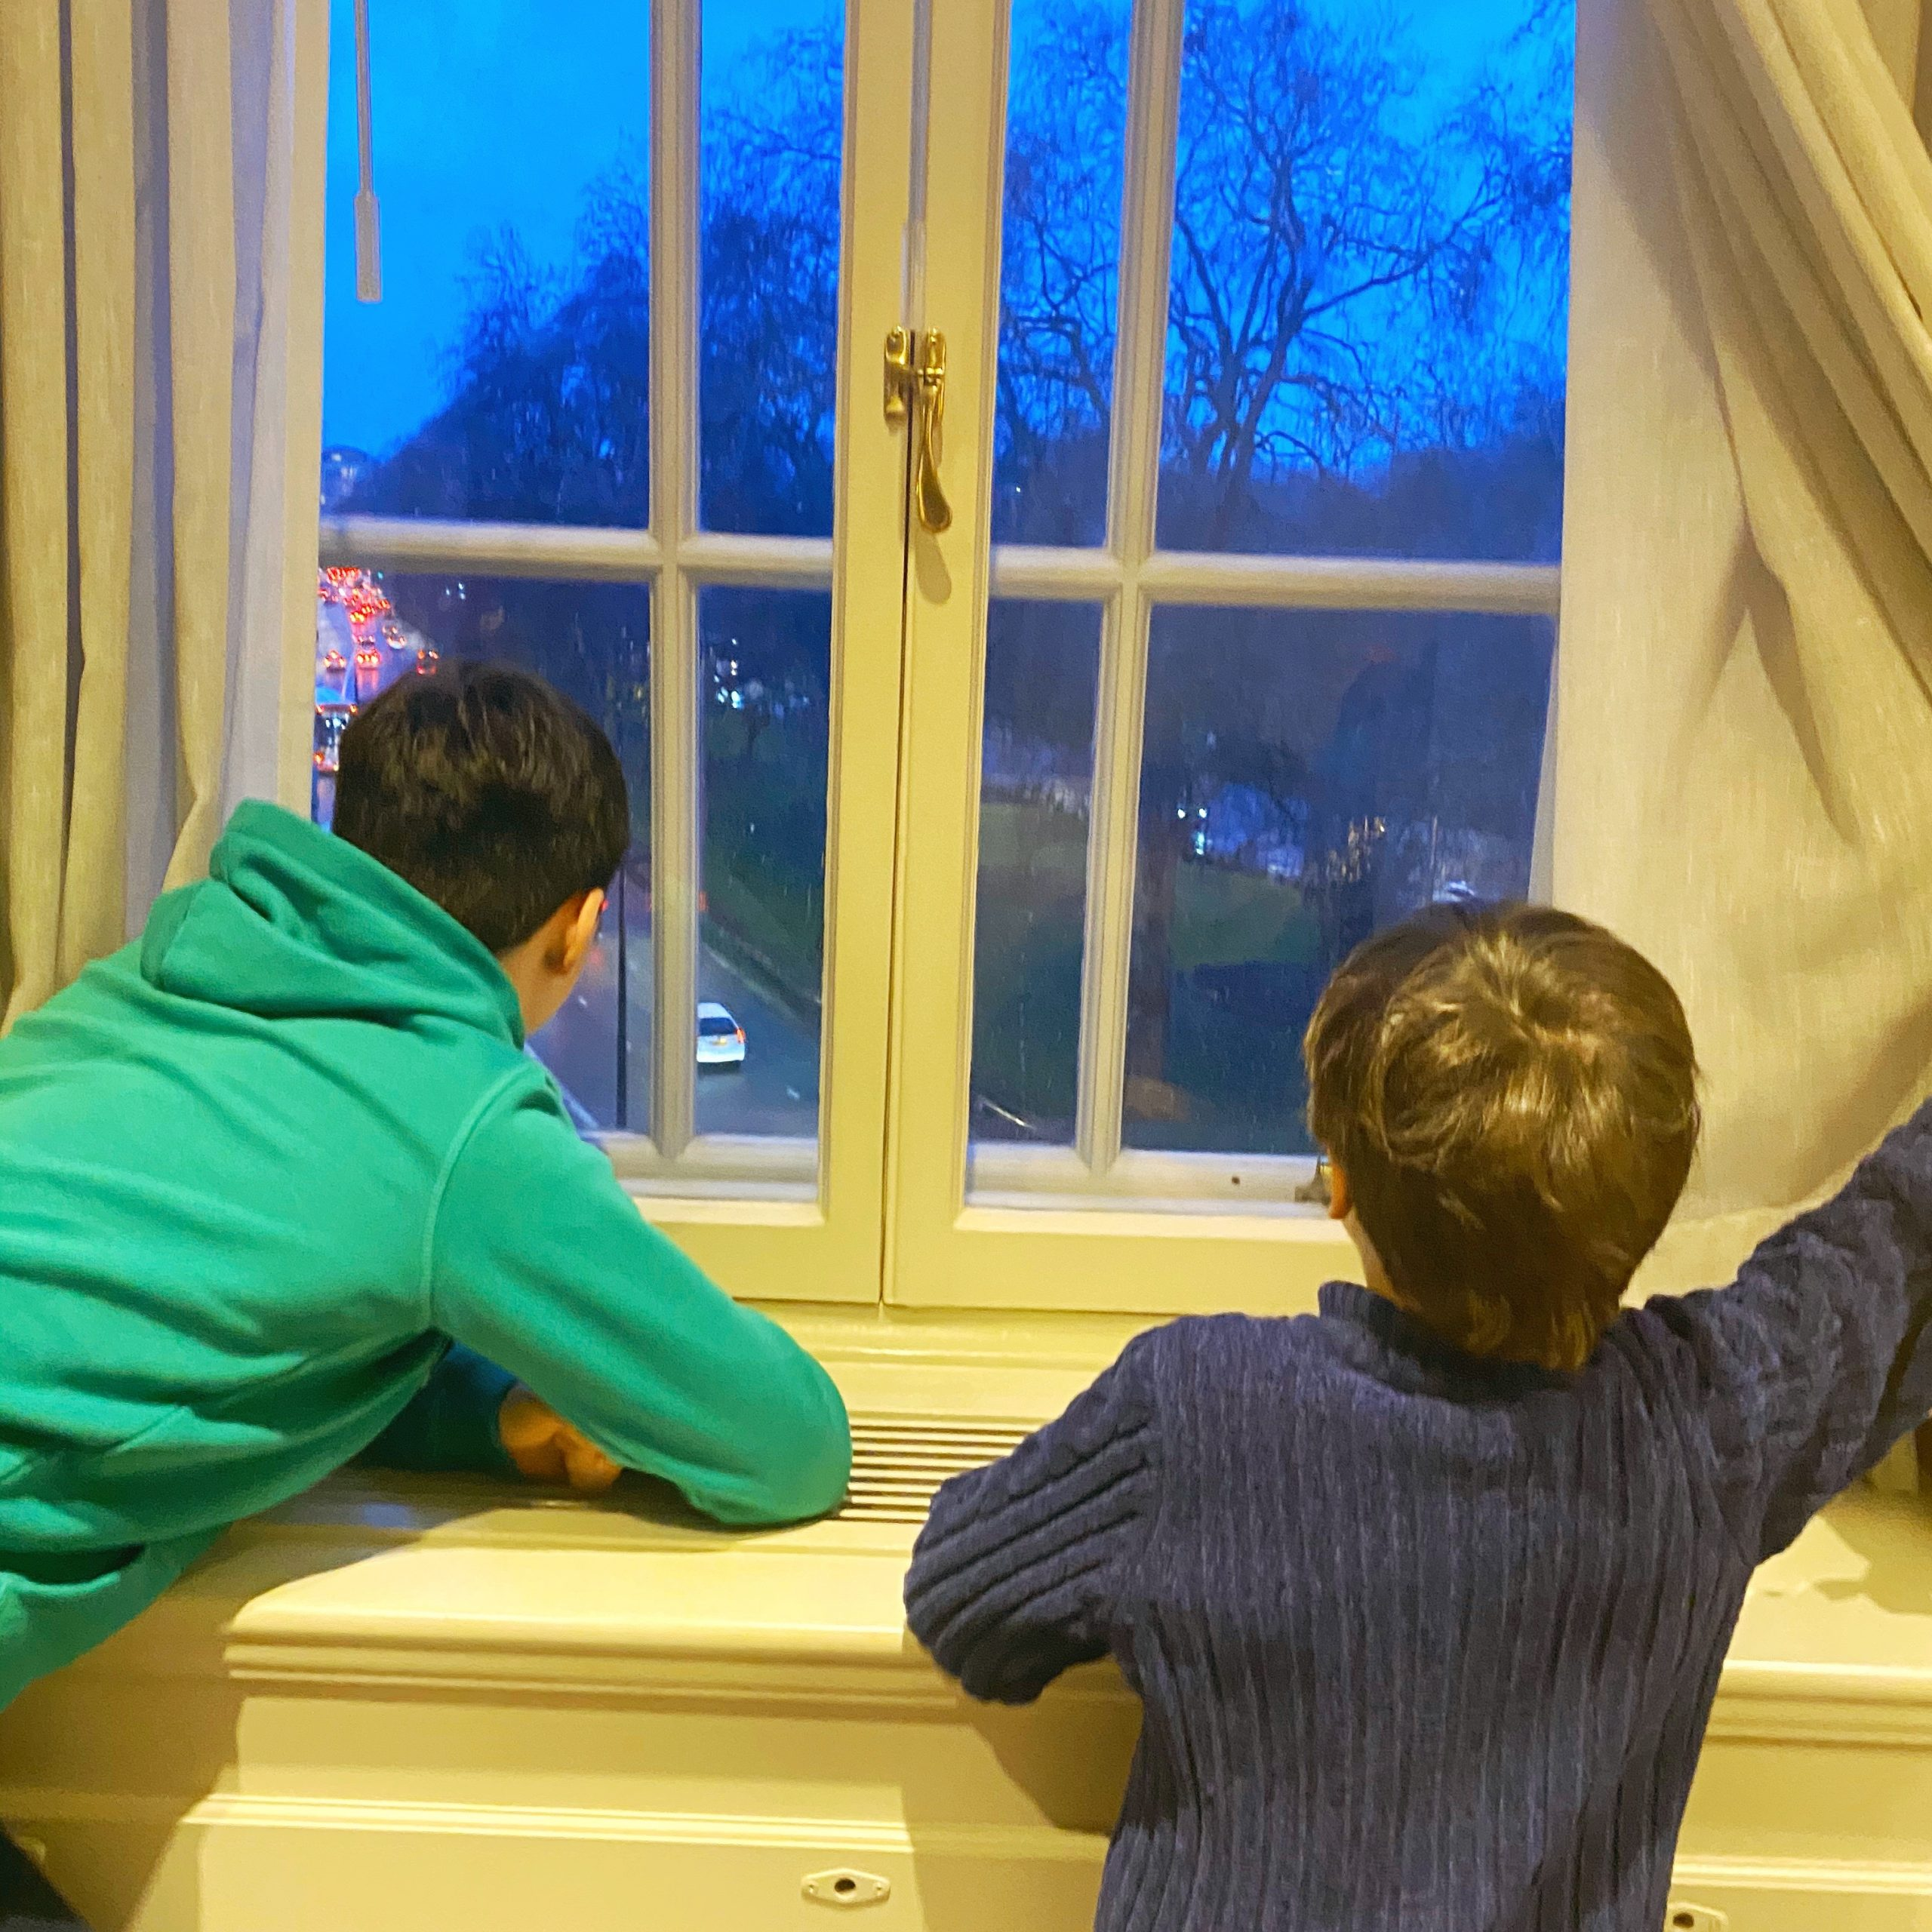 Family life with two boys looking out of a window at cars